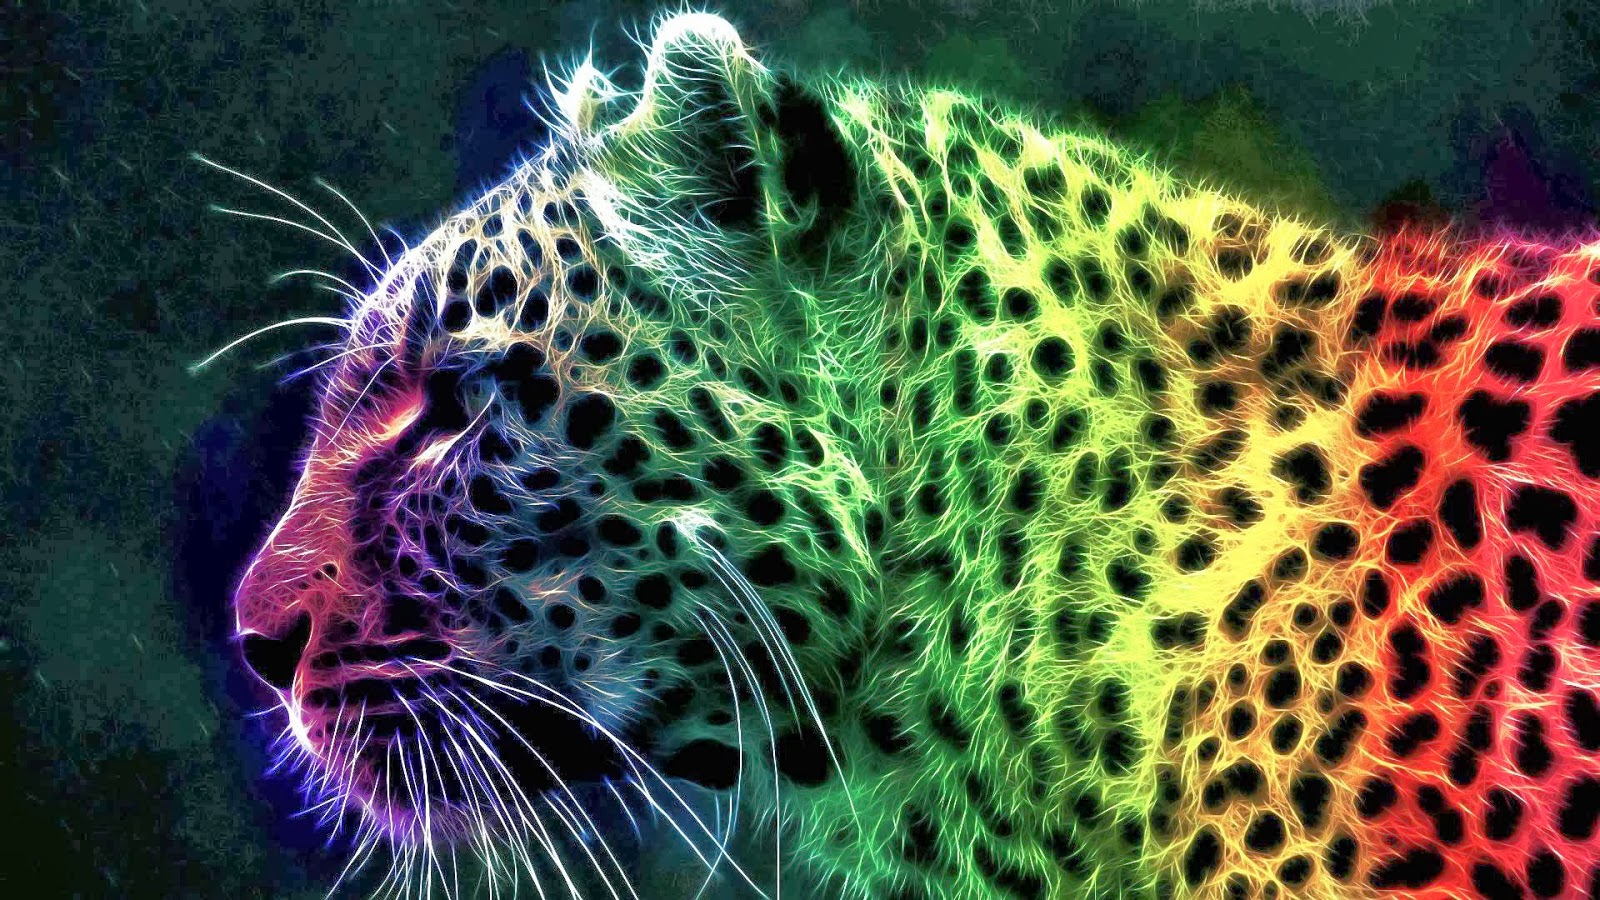 Rainbow Cheetah Wallpaper Best Windows 7 Wallpapers 1600x900